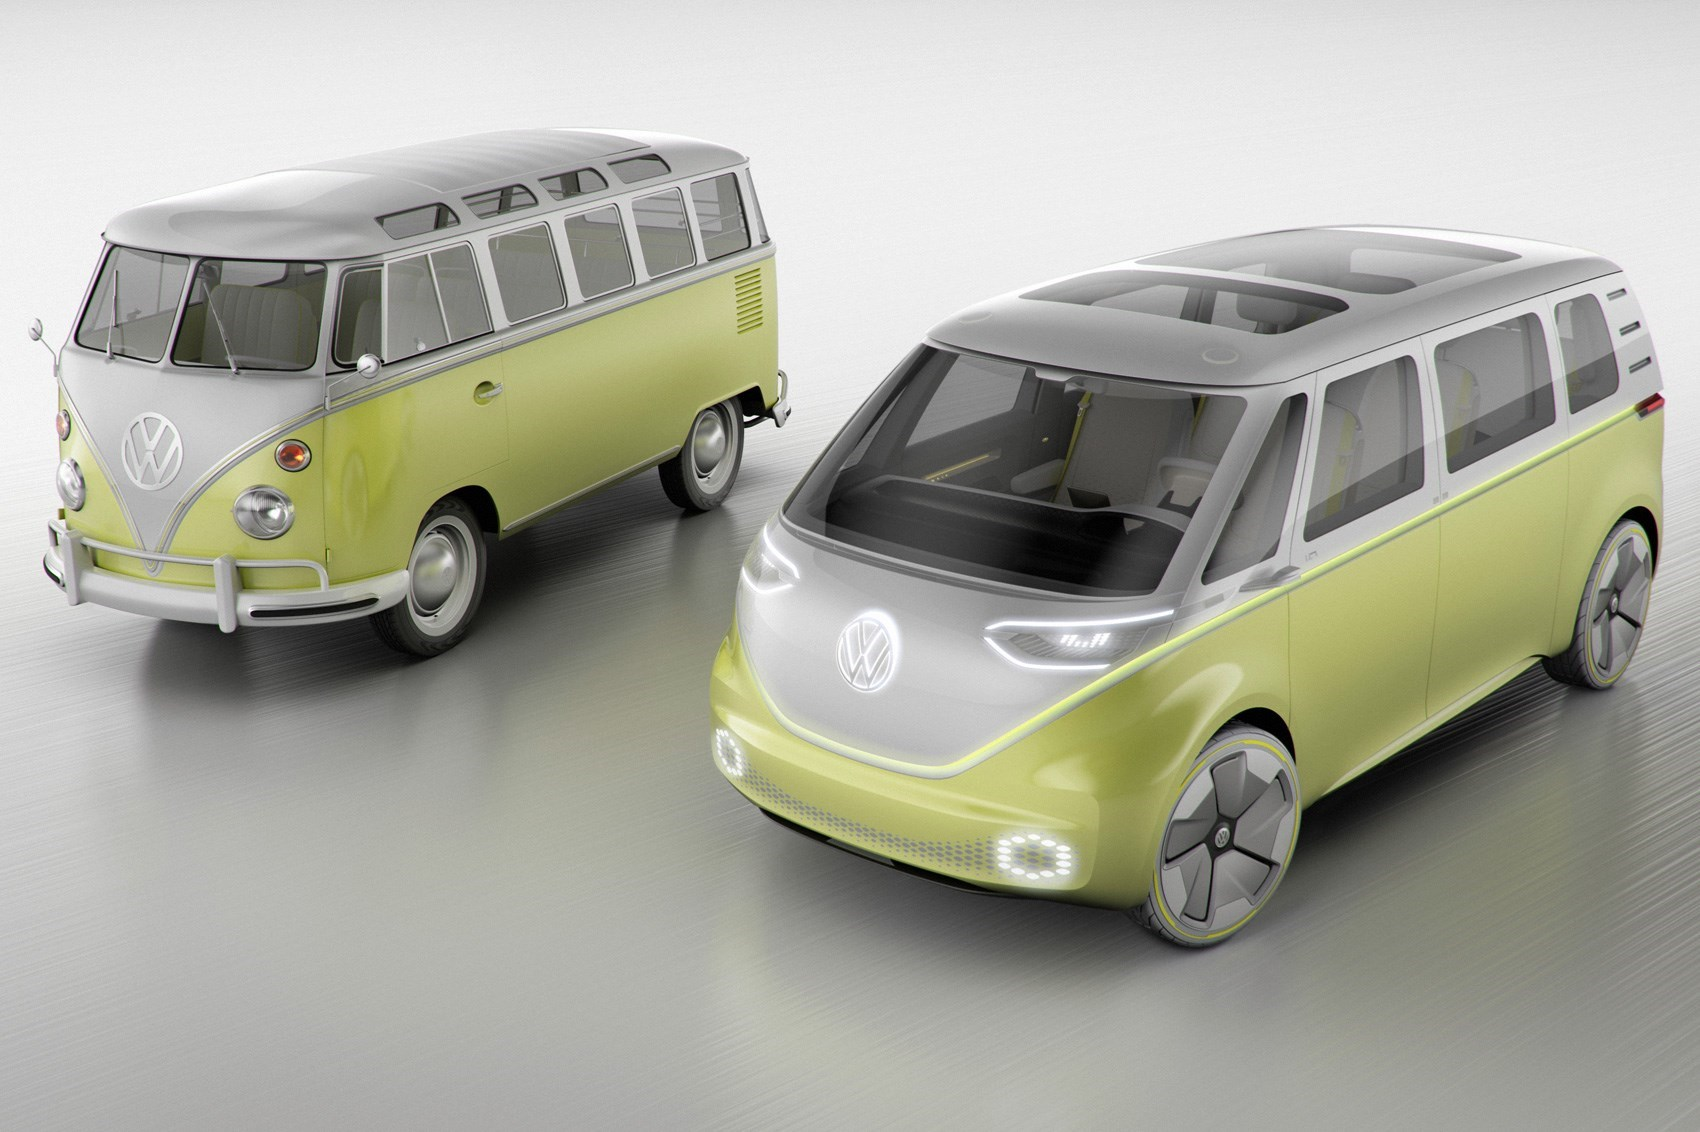 Vw microbus due in 2022 as electric minivan car magazine microbuses old and news vw will relaunch in 2022 publicscrutiny Gallery